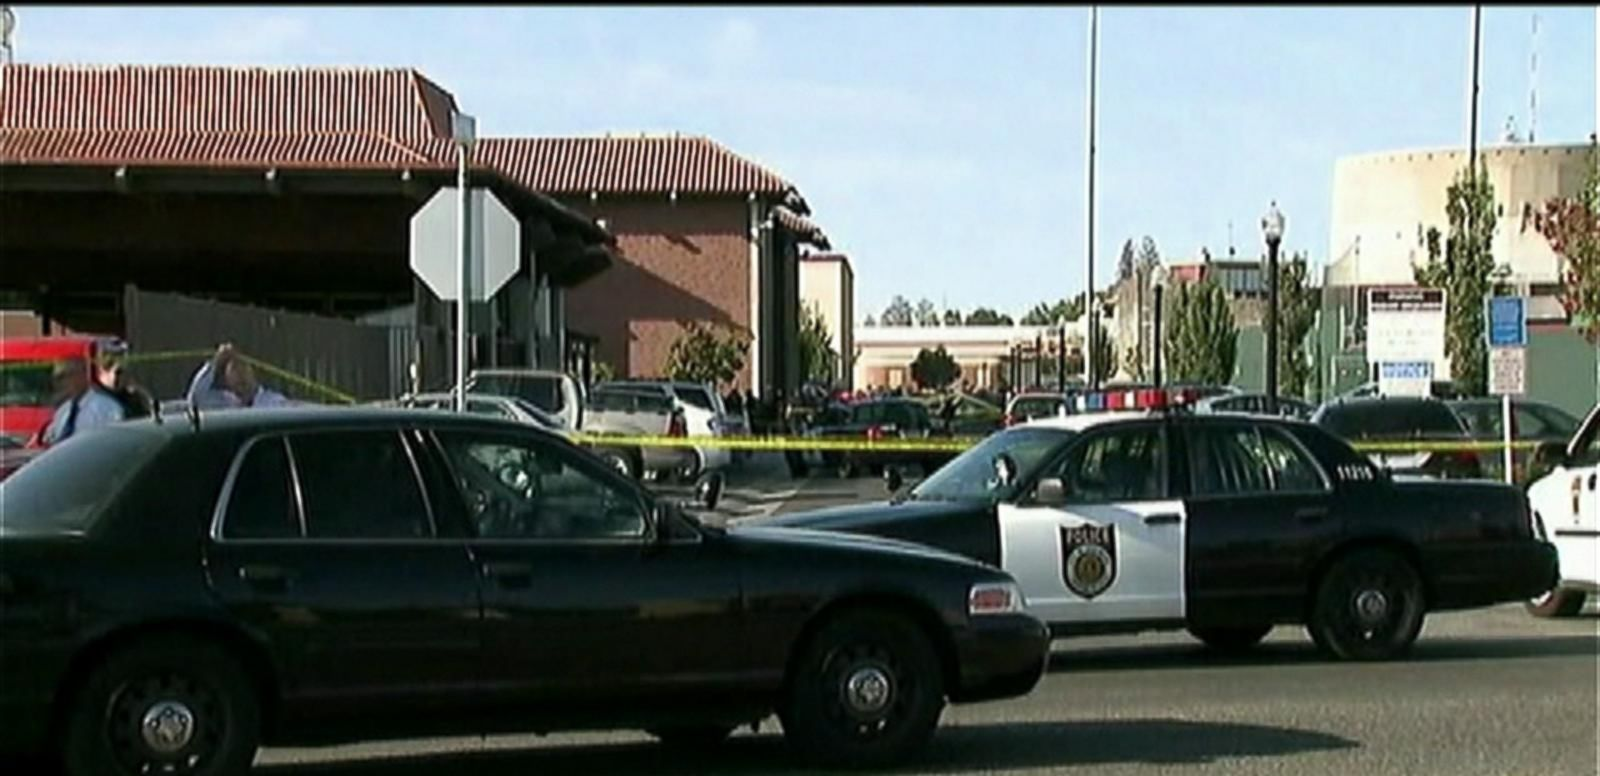 VIDEO: Gunman at Large After Deadly Shooting at Sacramento City College